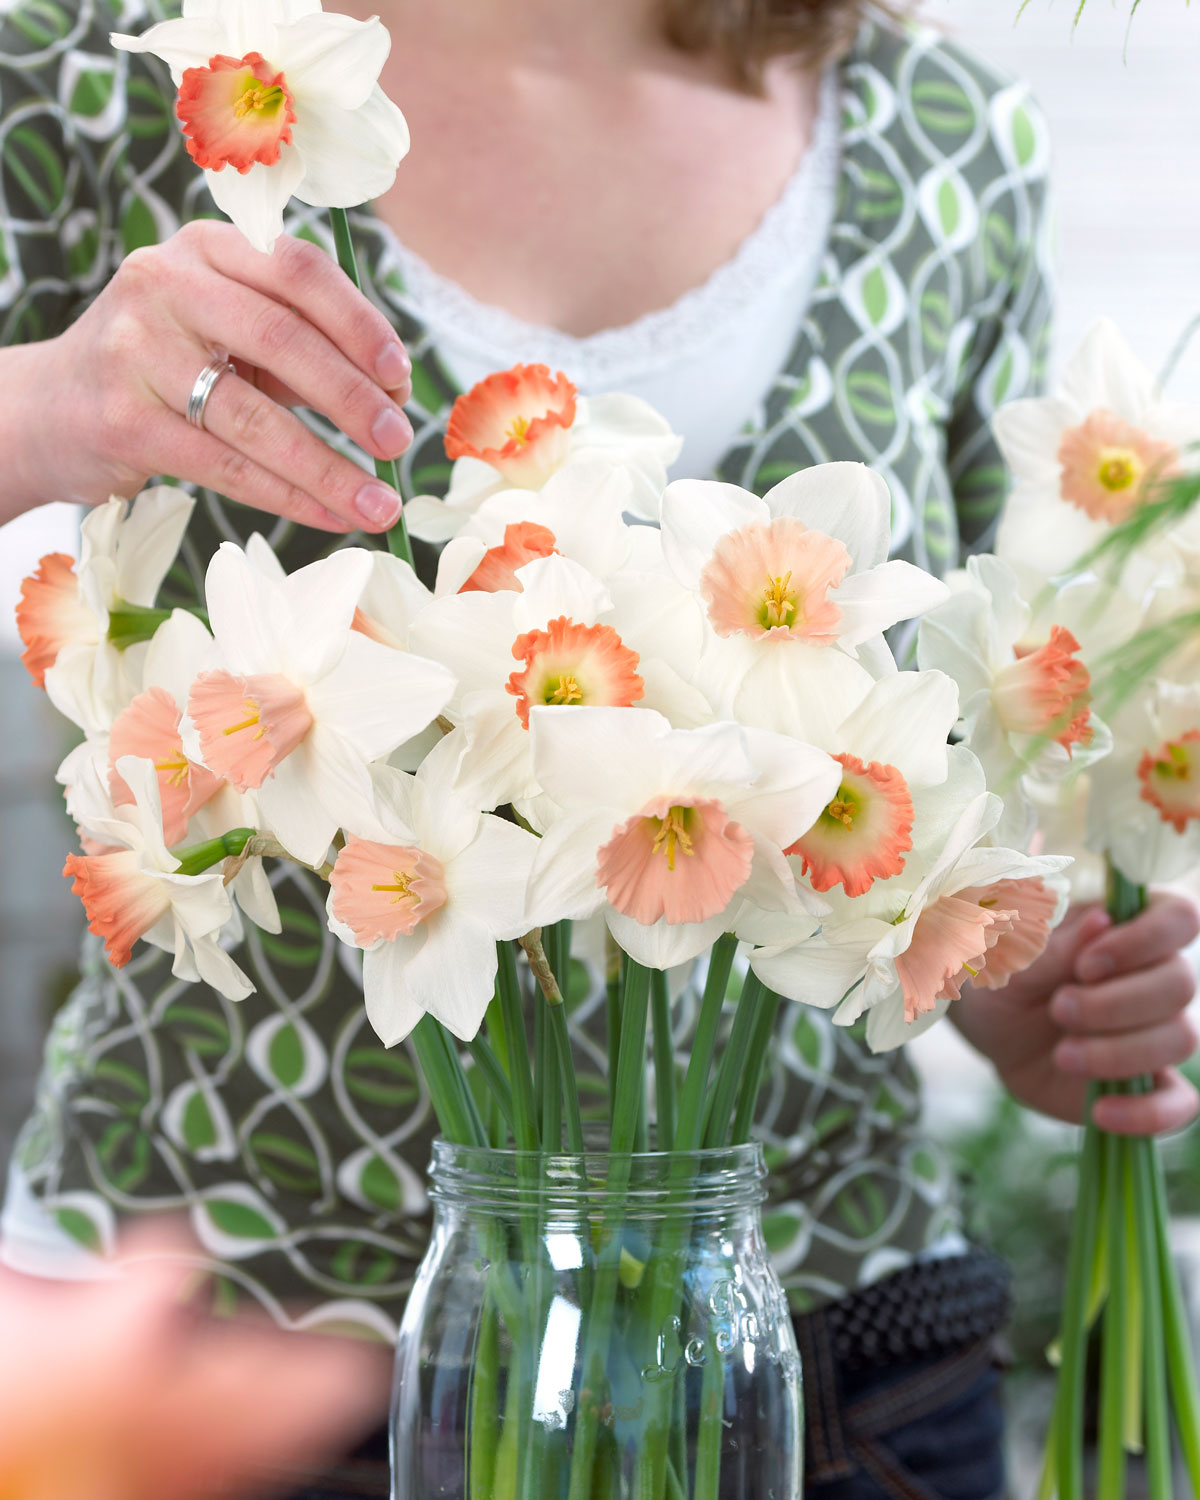 Expert Tips for Cutting and Arranging Spring Flowers - Longfield Gardens